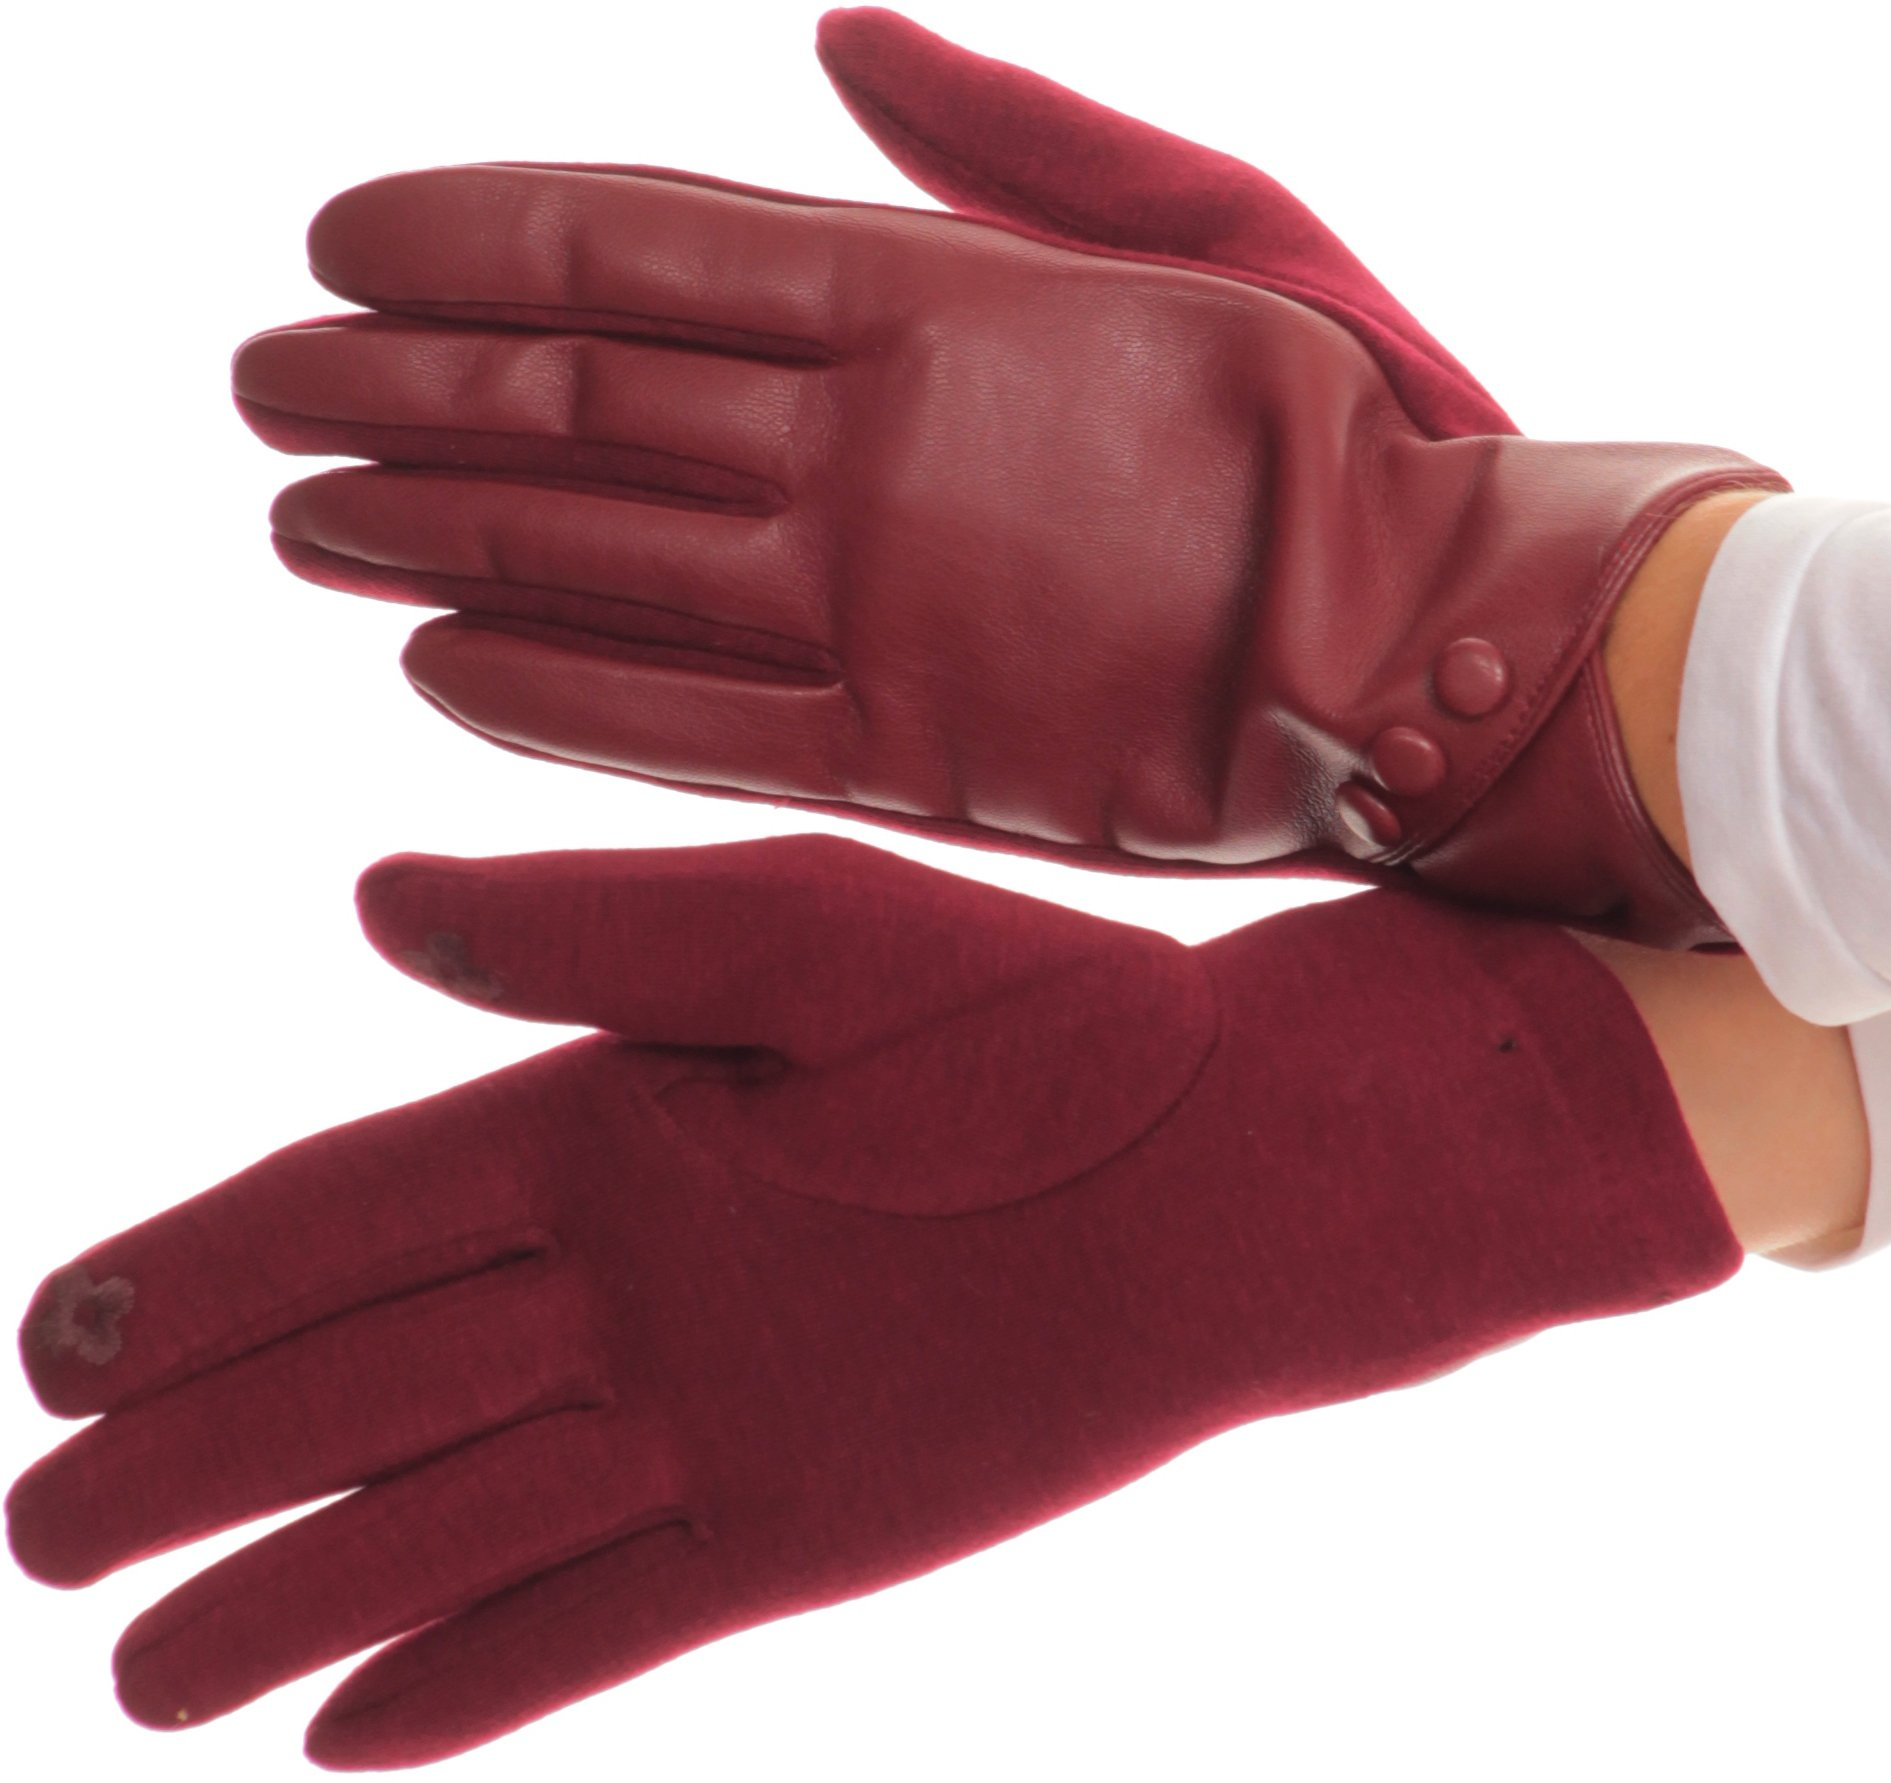 Sakkas 16165 - Pamb Faux Leather Heather Knit Button Front Warm Winter Touch Screen Gloves - Burgundy - S/M